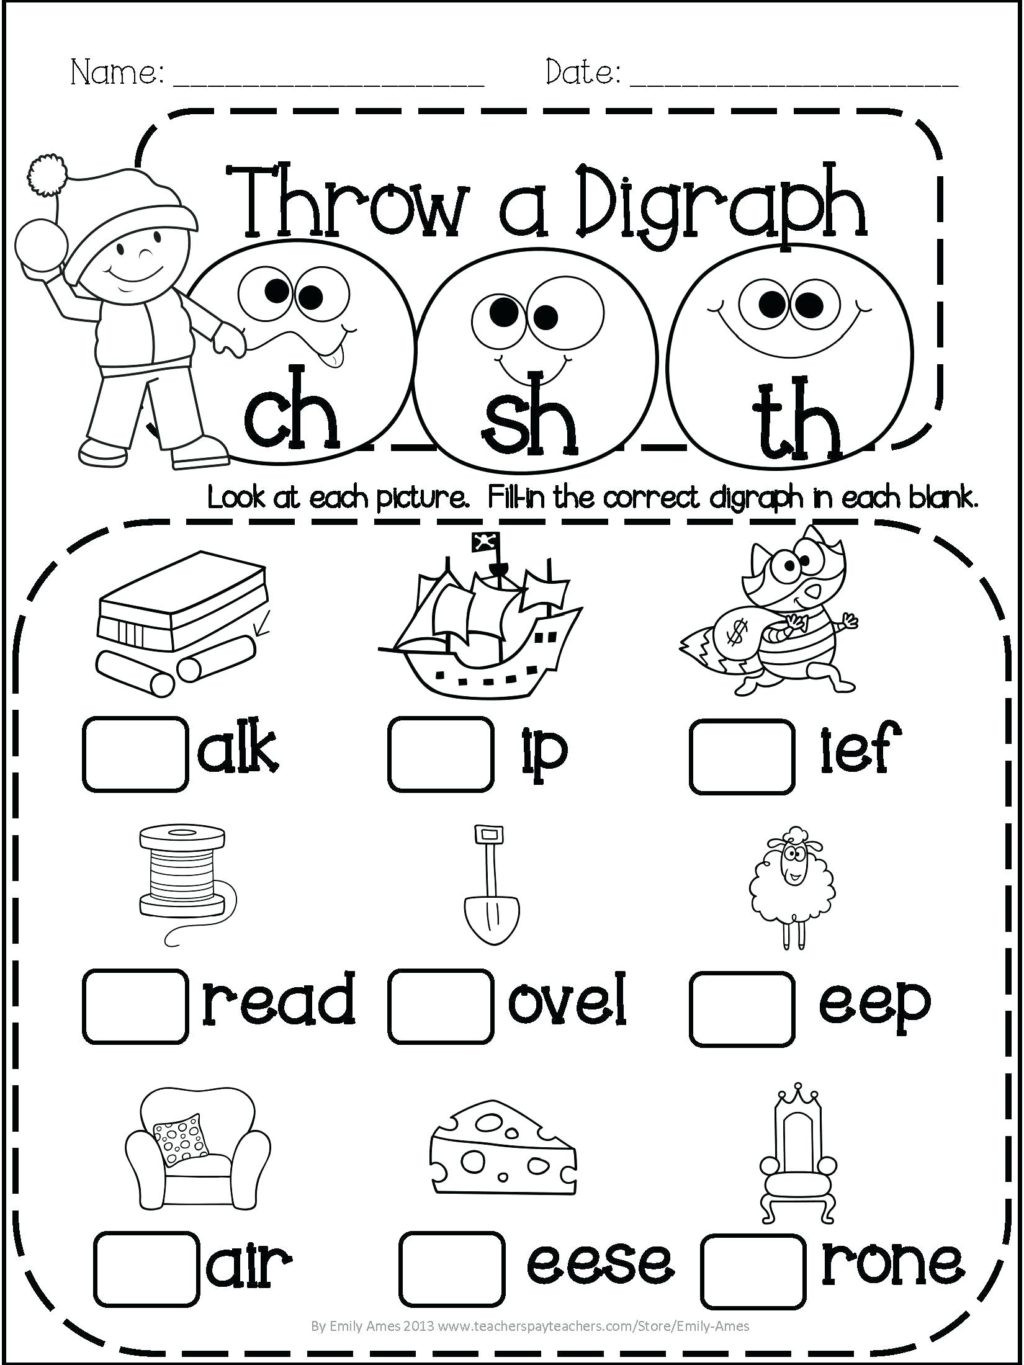 reading worskheets math and subtraction worksheets first grade workbook algebra equations if you give mouse cookie printable kids worksheet unit 1024x1365